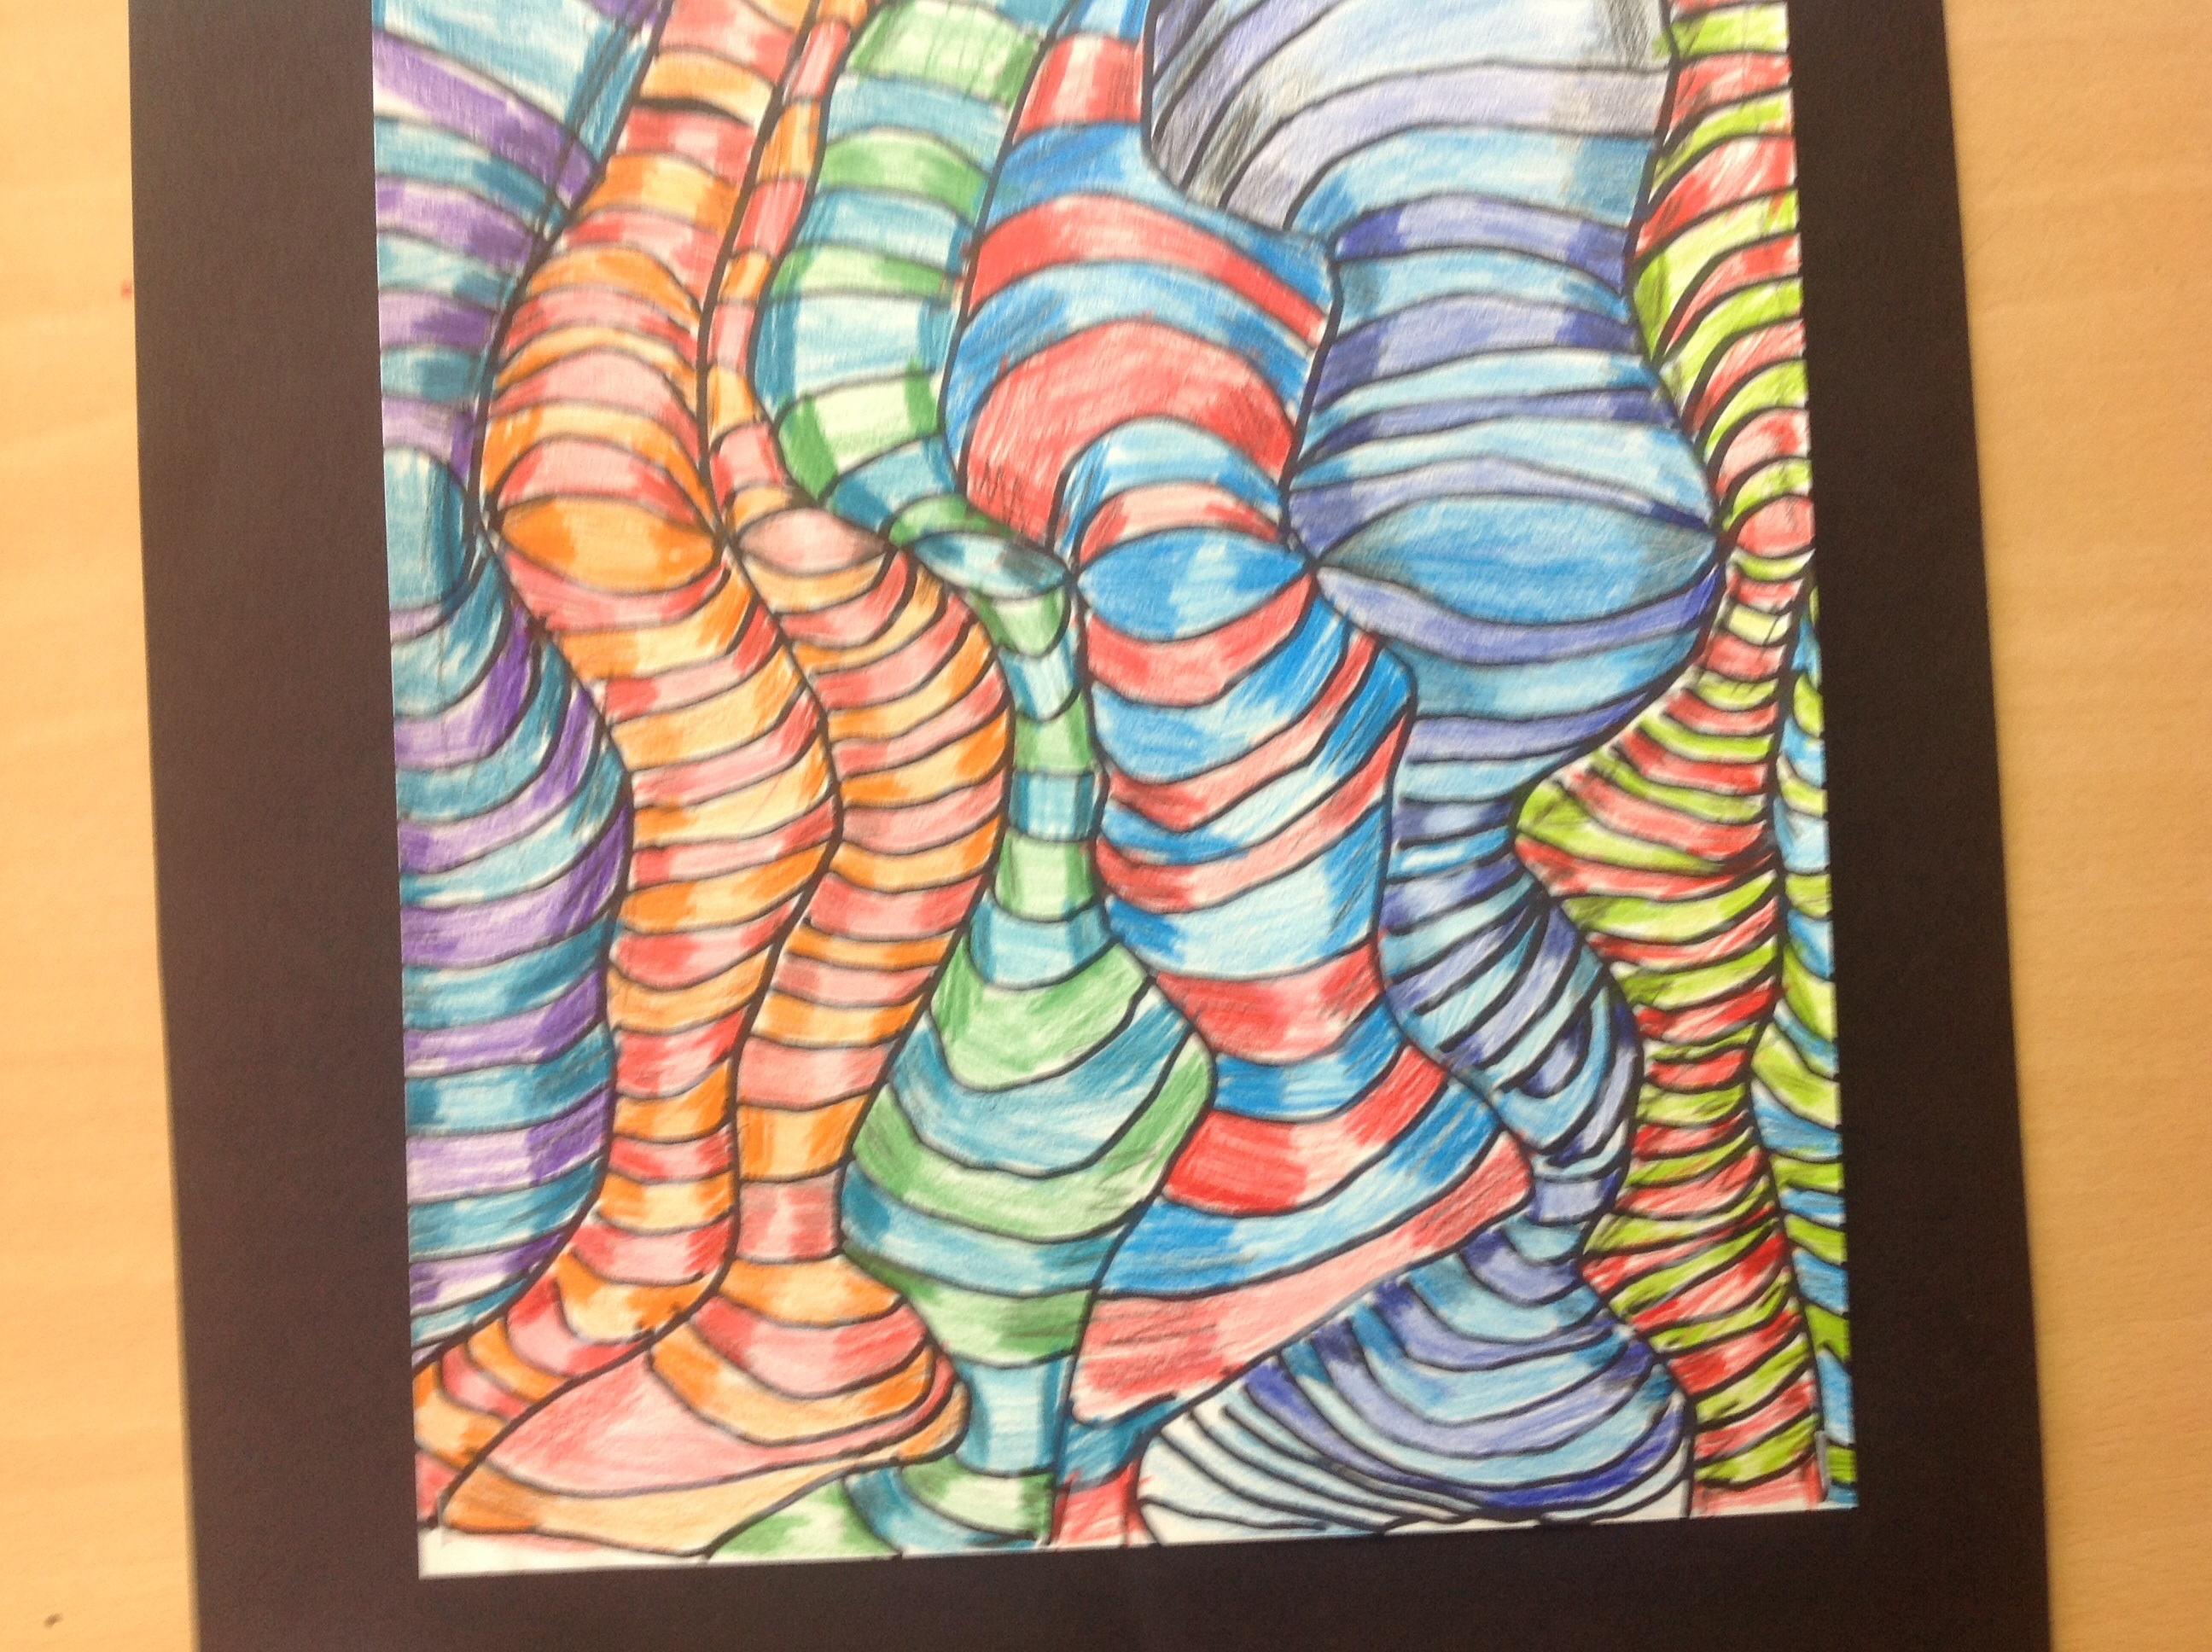 Drawn optical illusion wavy line Kind a its we we